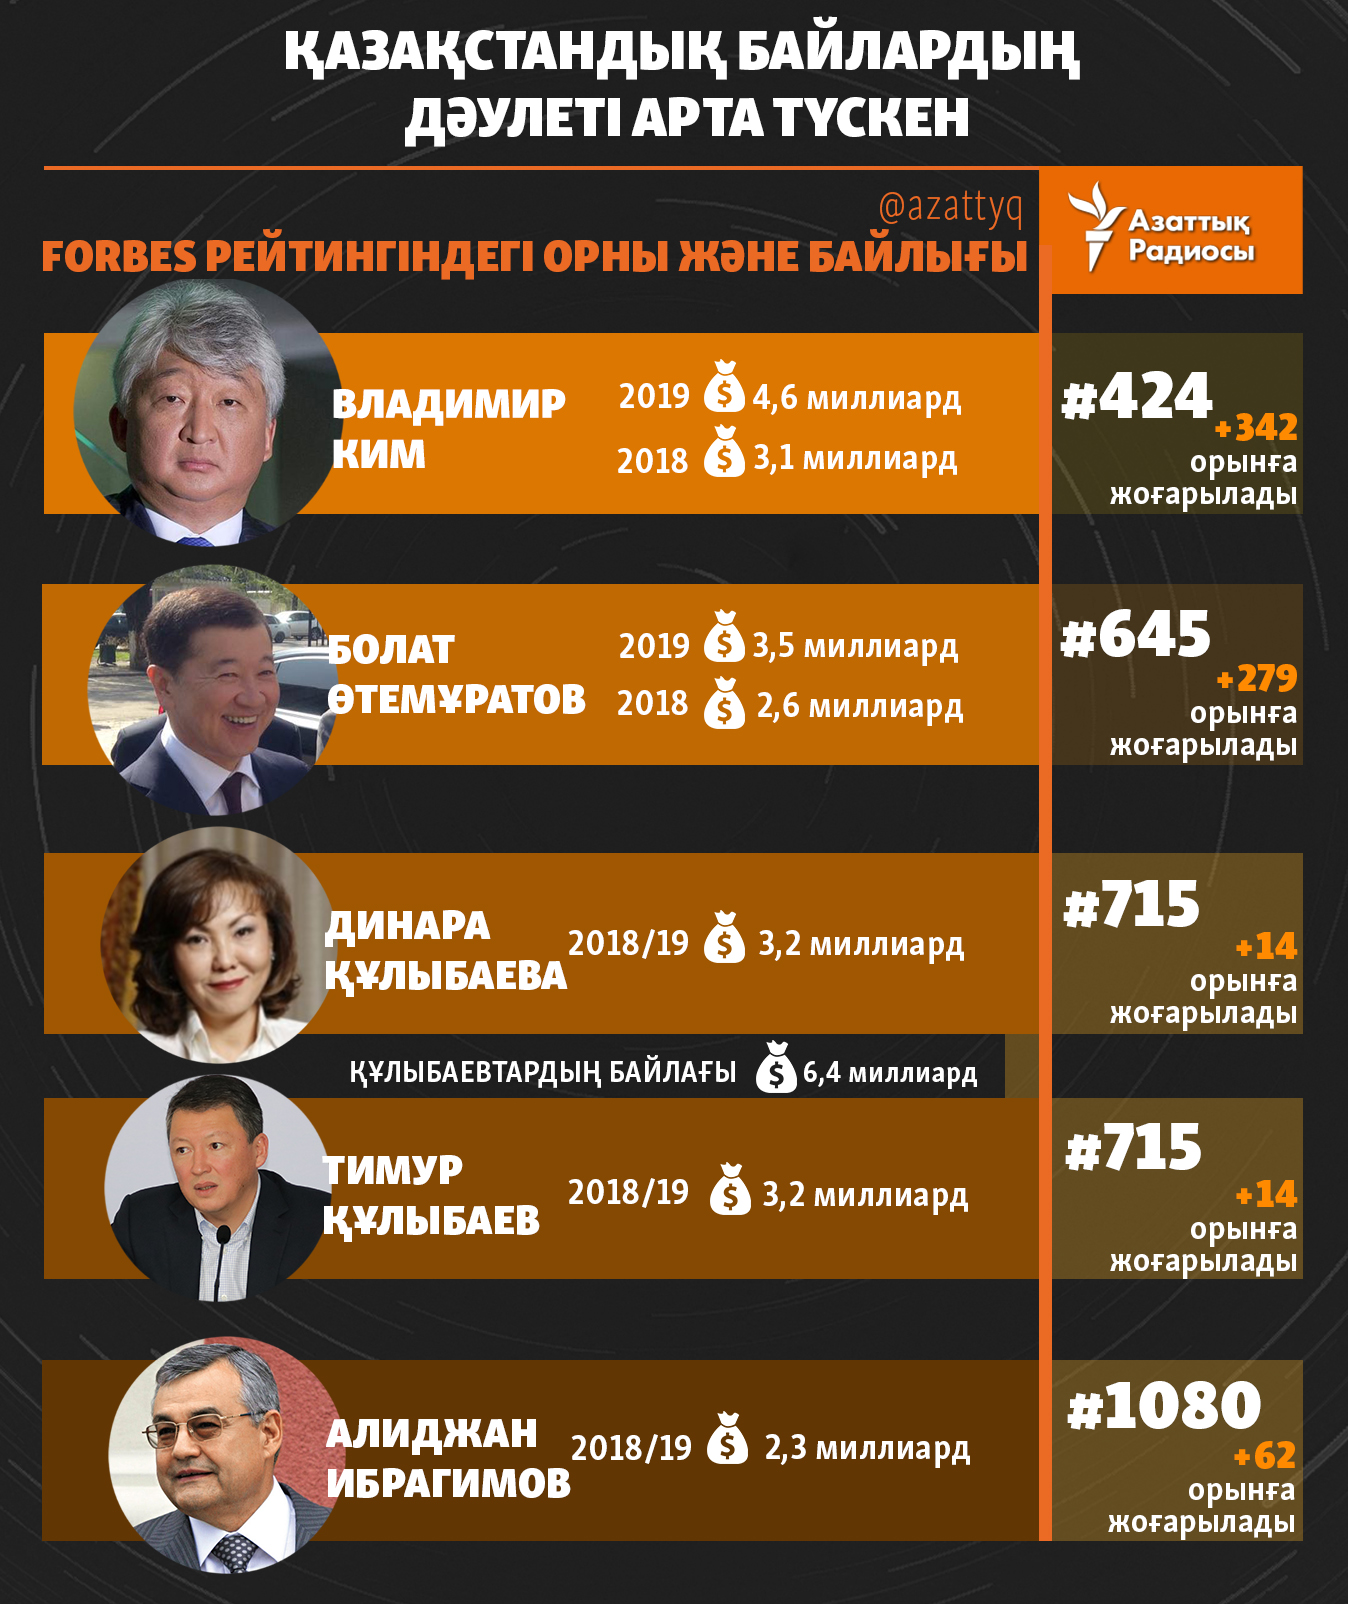 infographic about forbes